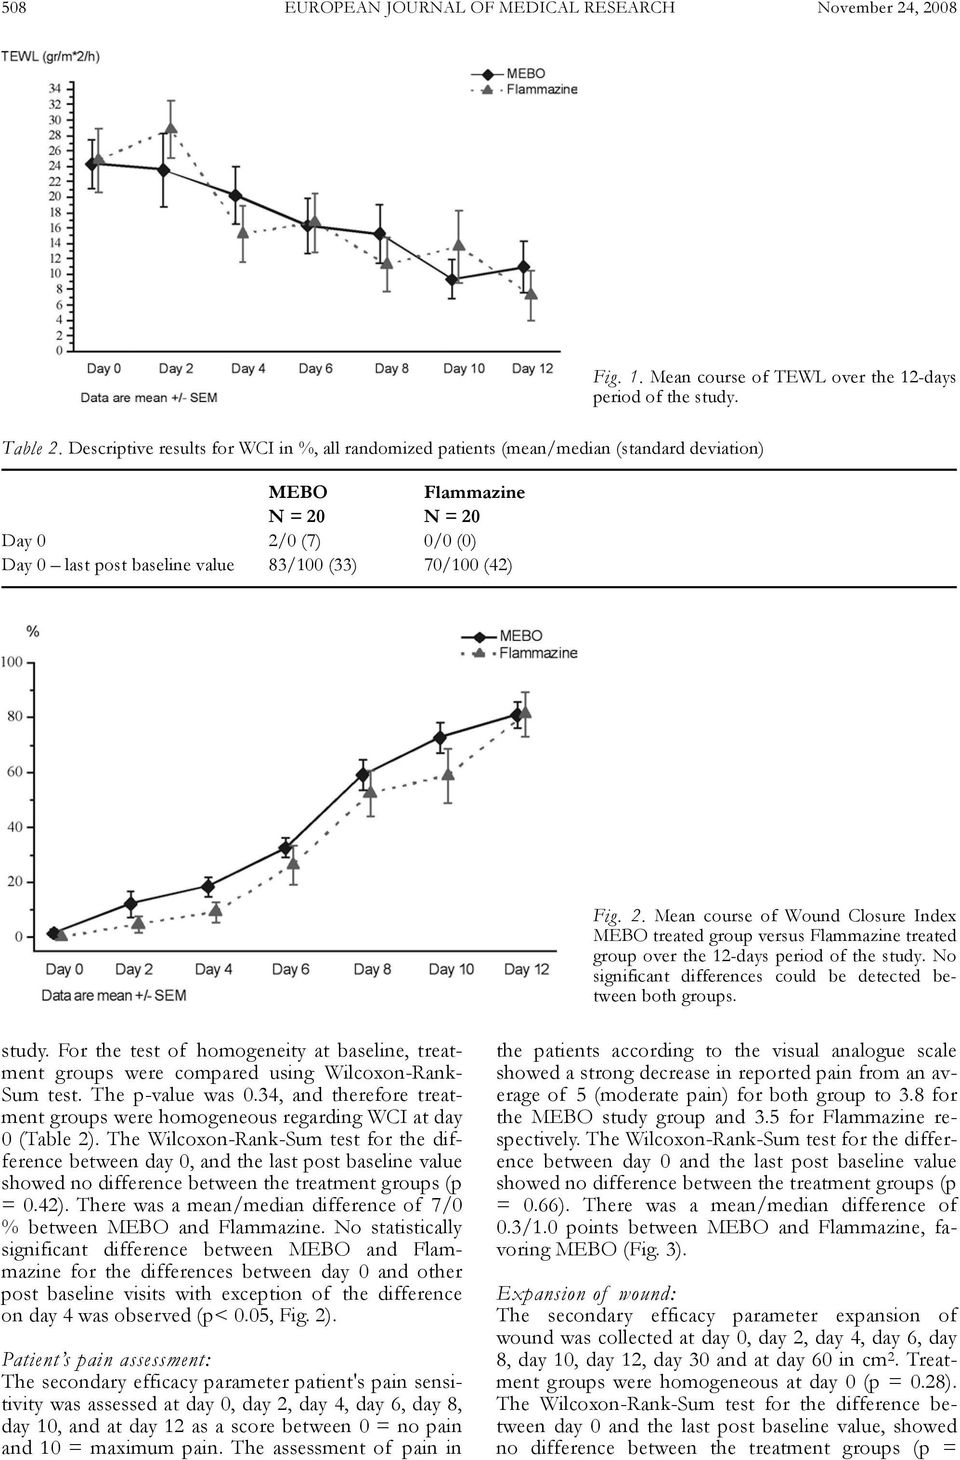 Fig. 1. Mean course of TEWL over the 12-days period of the study. Fig. 2. Mean course of Wound Closure Index MEBO treated group versus Flammazine treated group over the 12-days period of the study.